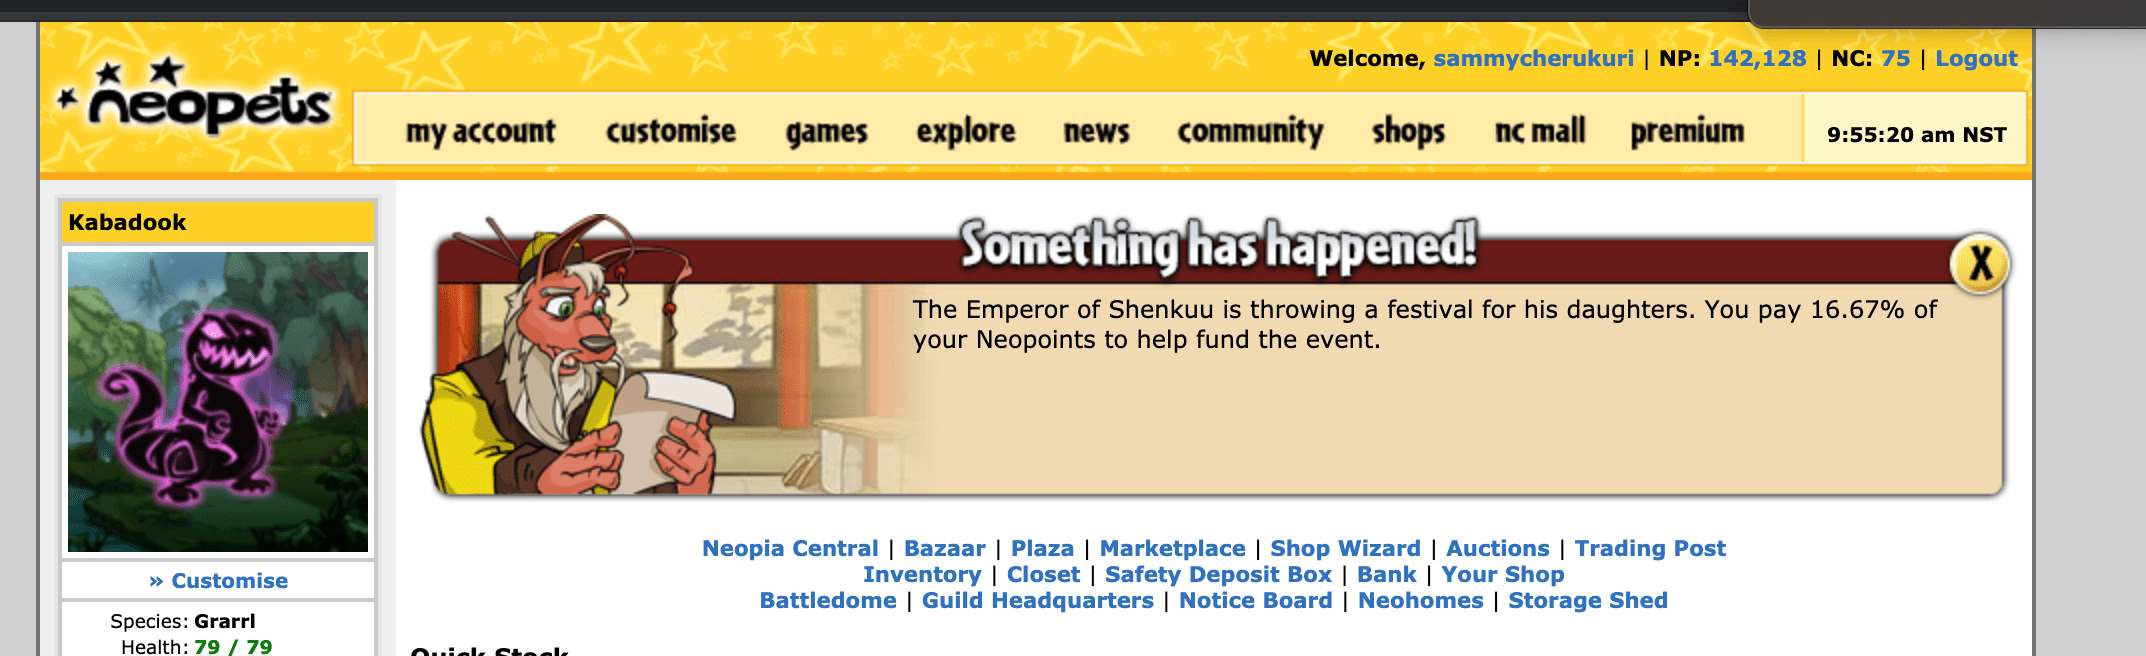 And This Is Why I Keep Most Of My Neopoints In The Bank Lmao Neopets